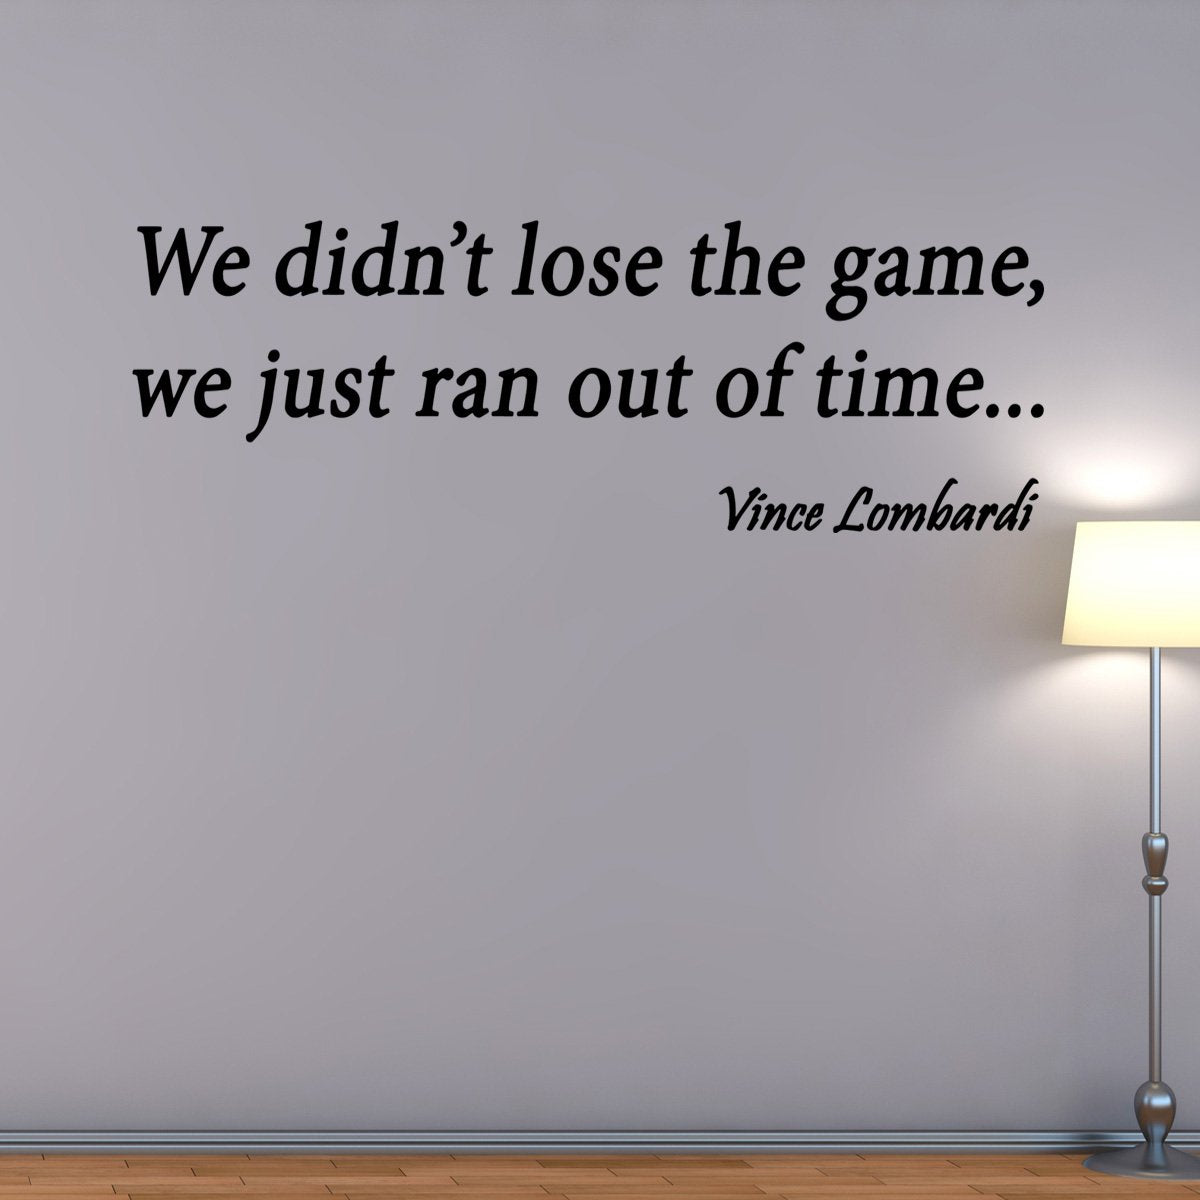 VWAQ We Didn't Lose the Game We Just Ran Out of Time Vince Lombardi Wall Decal